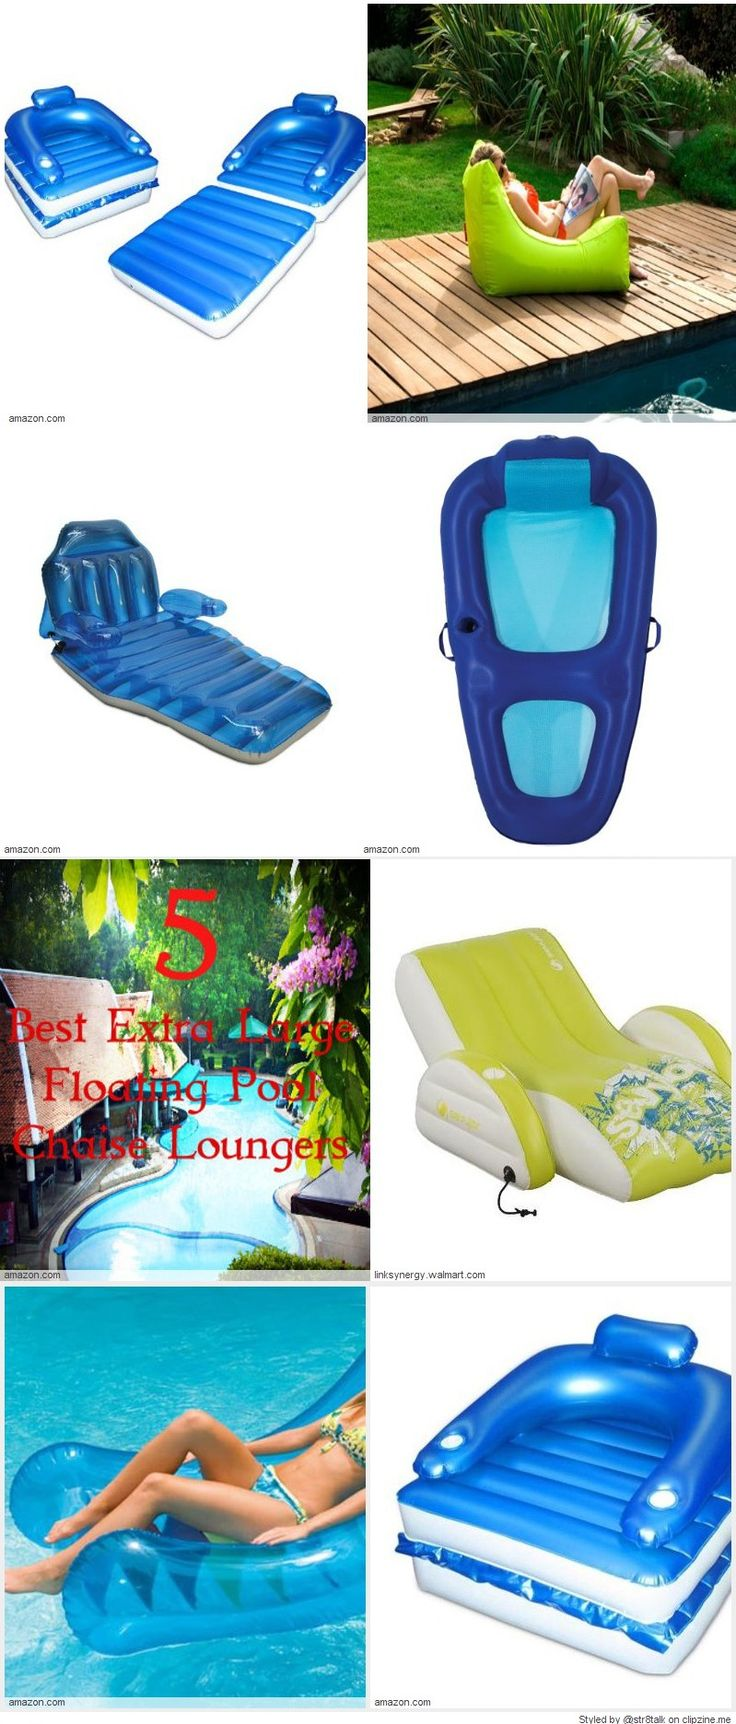 7 best swimming pool lounge chairs images on pinterest chaise lounge chairs chaise lounges. Black Bedroom Furniture Sets. Home Design Ideas